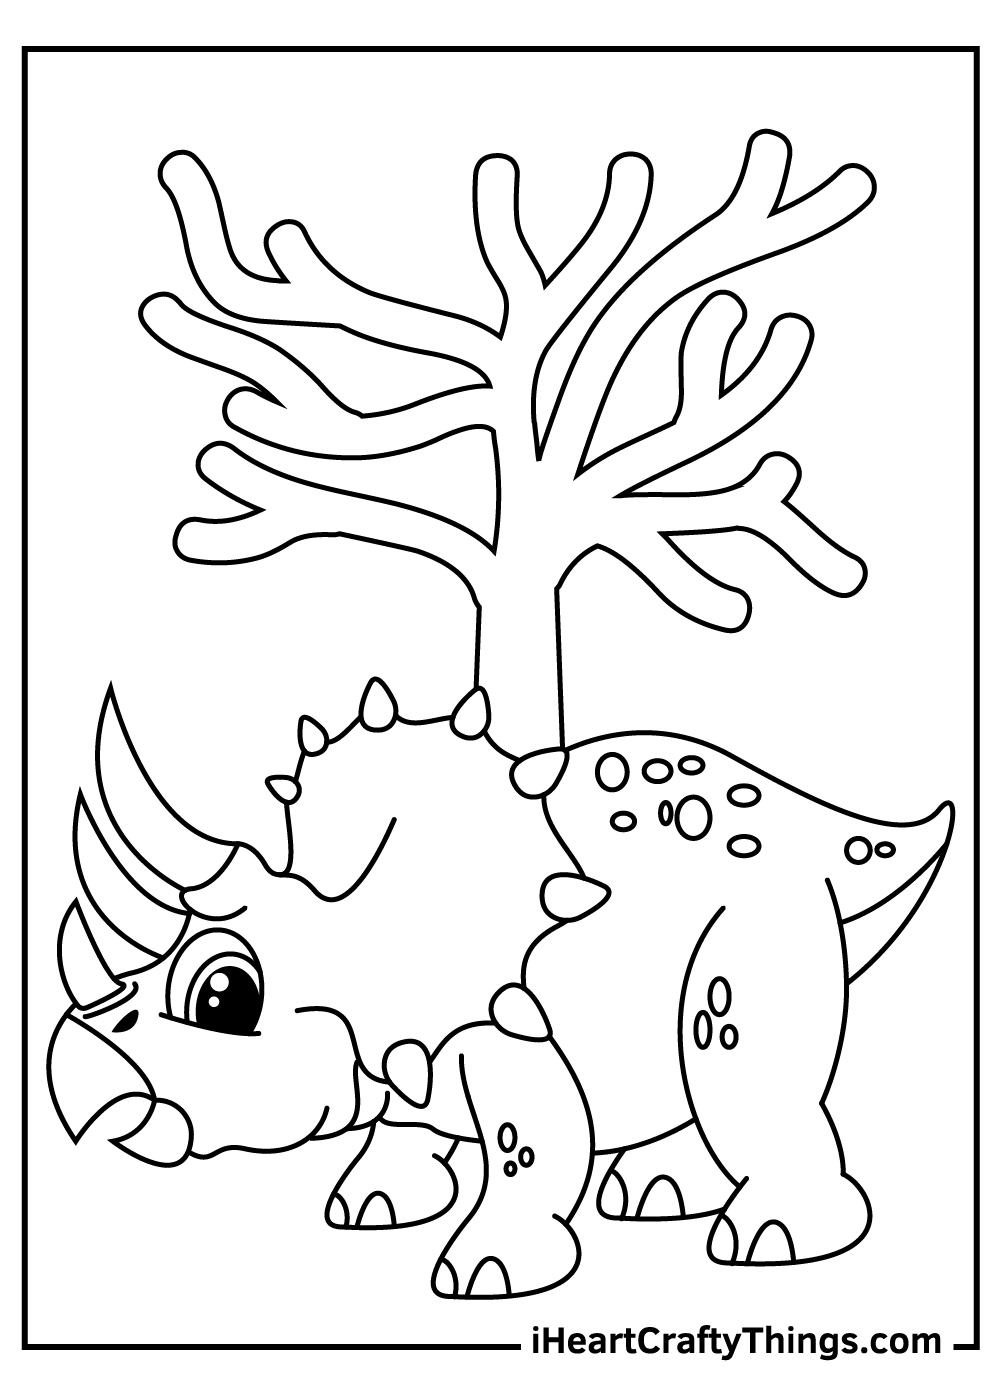 dinosaur triceratops coloring pages free download